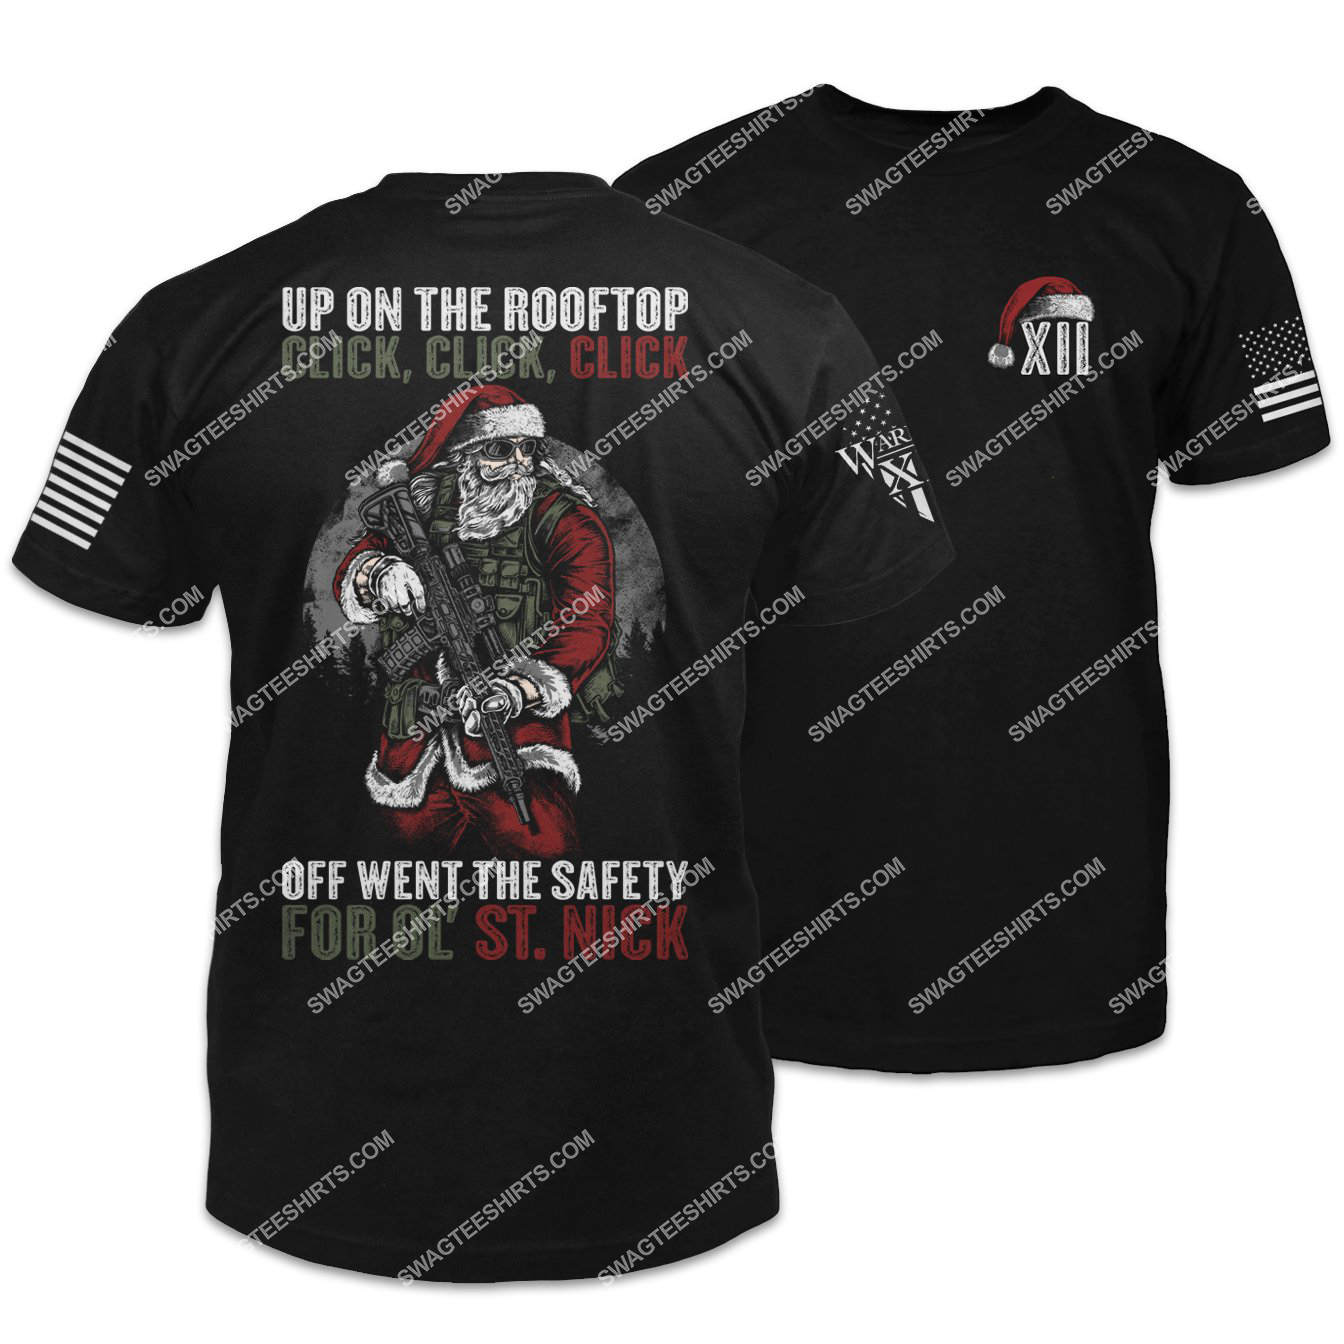 up on the rooftop off went the safety for ol' st nick santa on patrol shirt 1